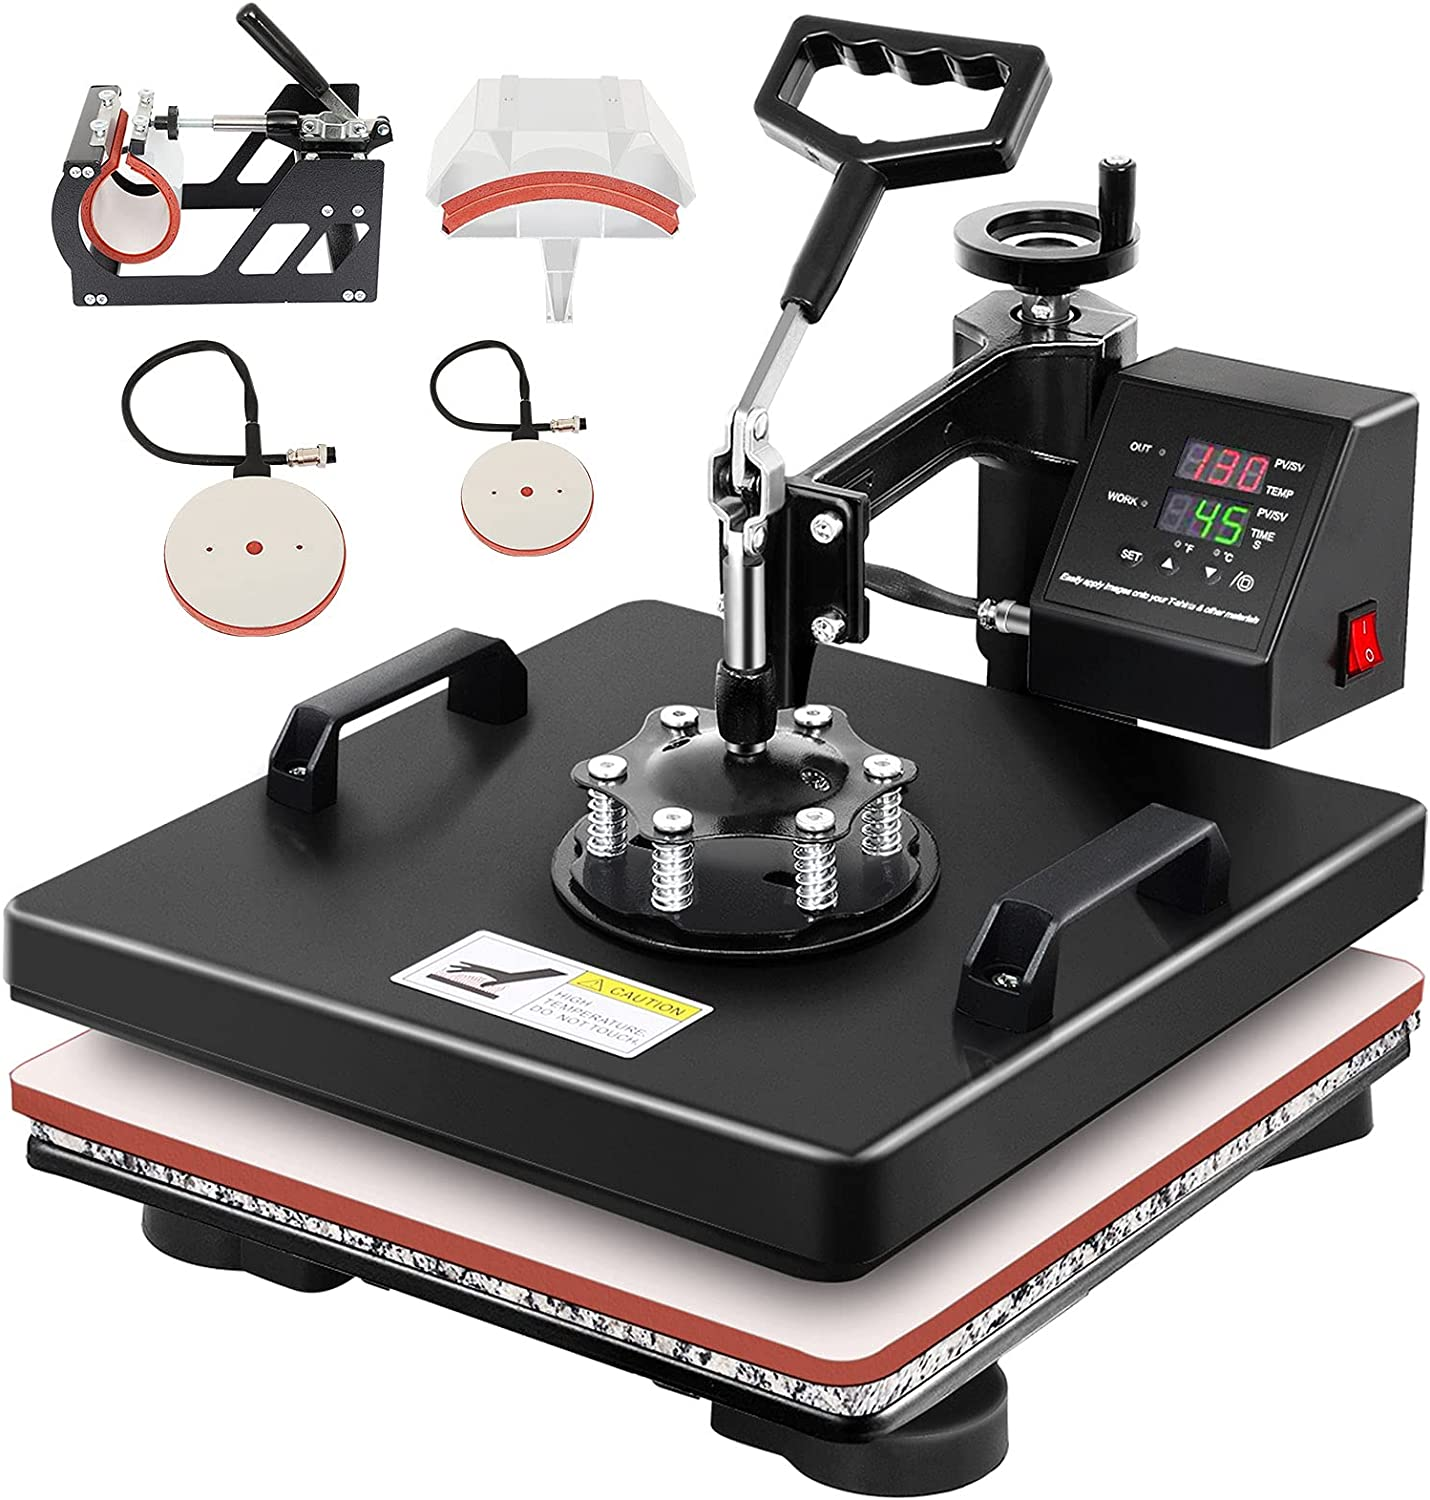 Dollate 15 x 15 Heat Press Machine 5 In 1 Digital Sublimation for Hat Plate T-shirt Mug Plate Cap Cup Heat Press Transfer Machine(5 in 1 15 x 15)